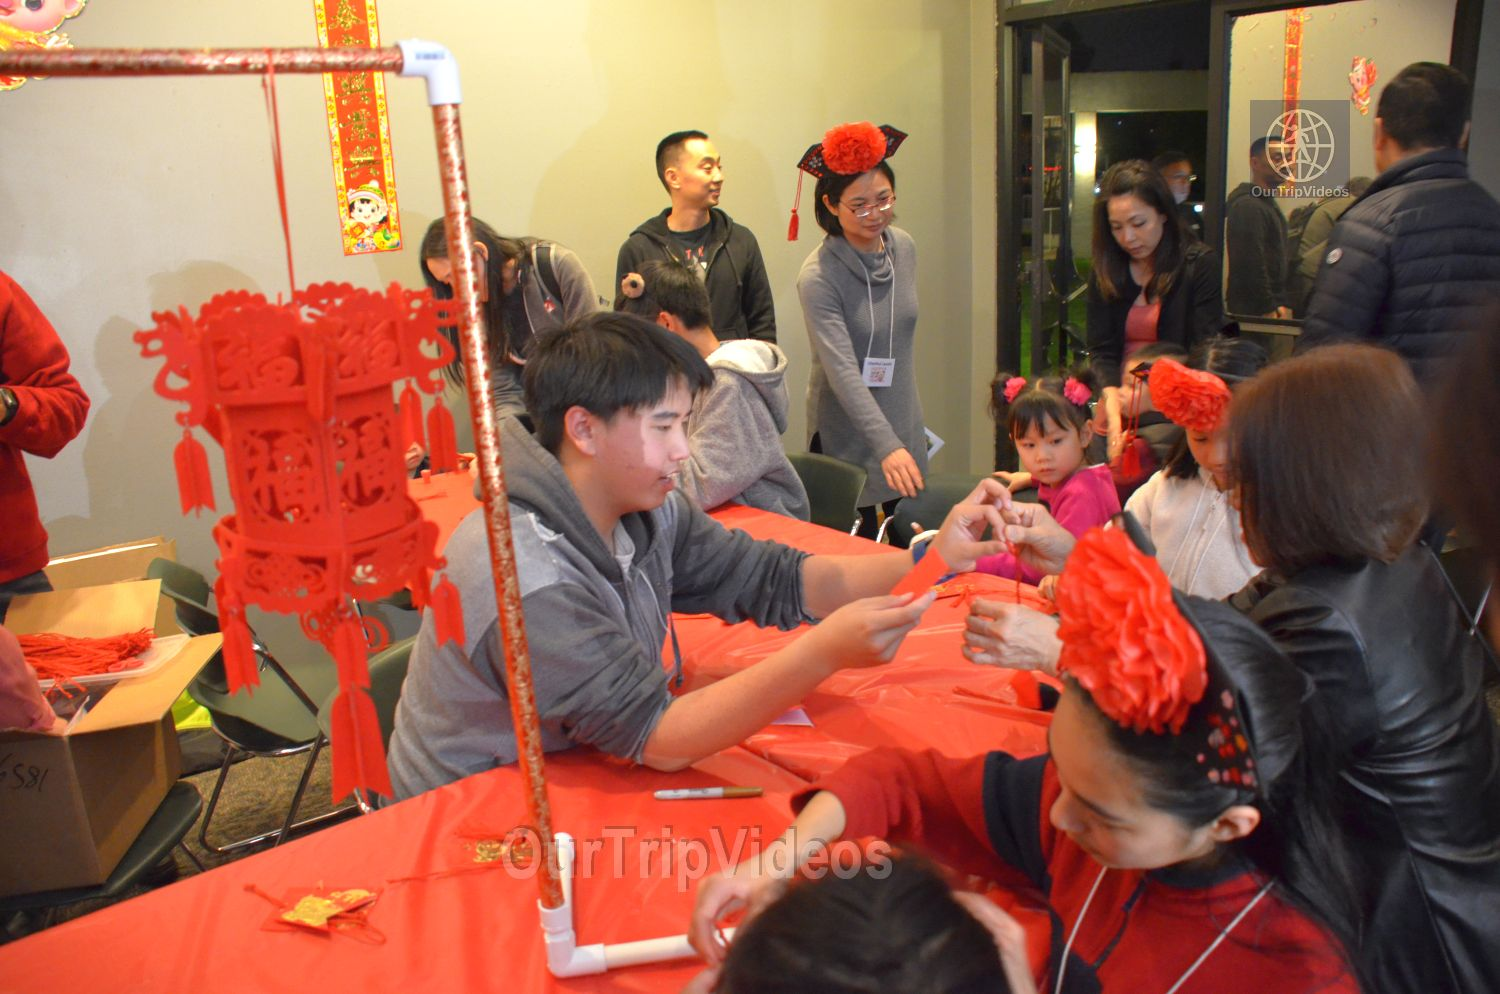 Chinese Lunar New Year Celebration, Milpitas, CA, USA - Picture 4 of 25